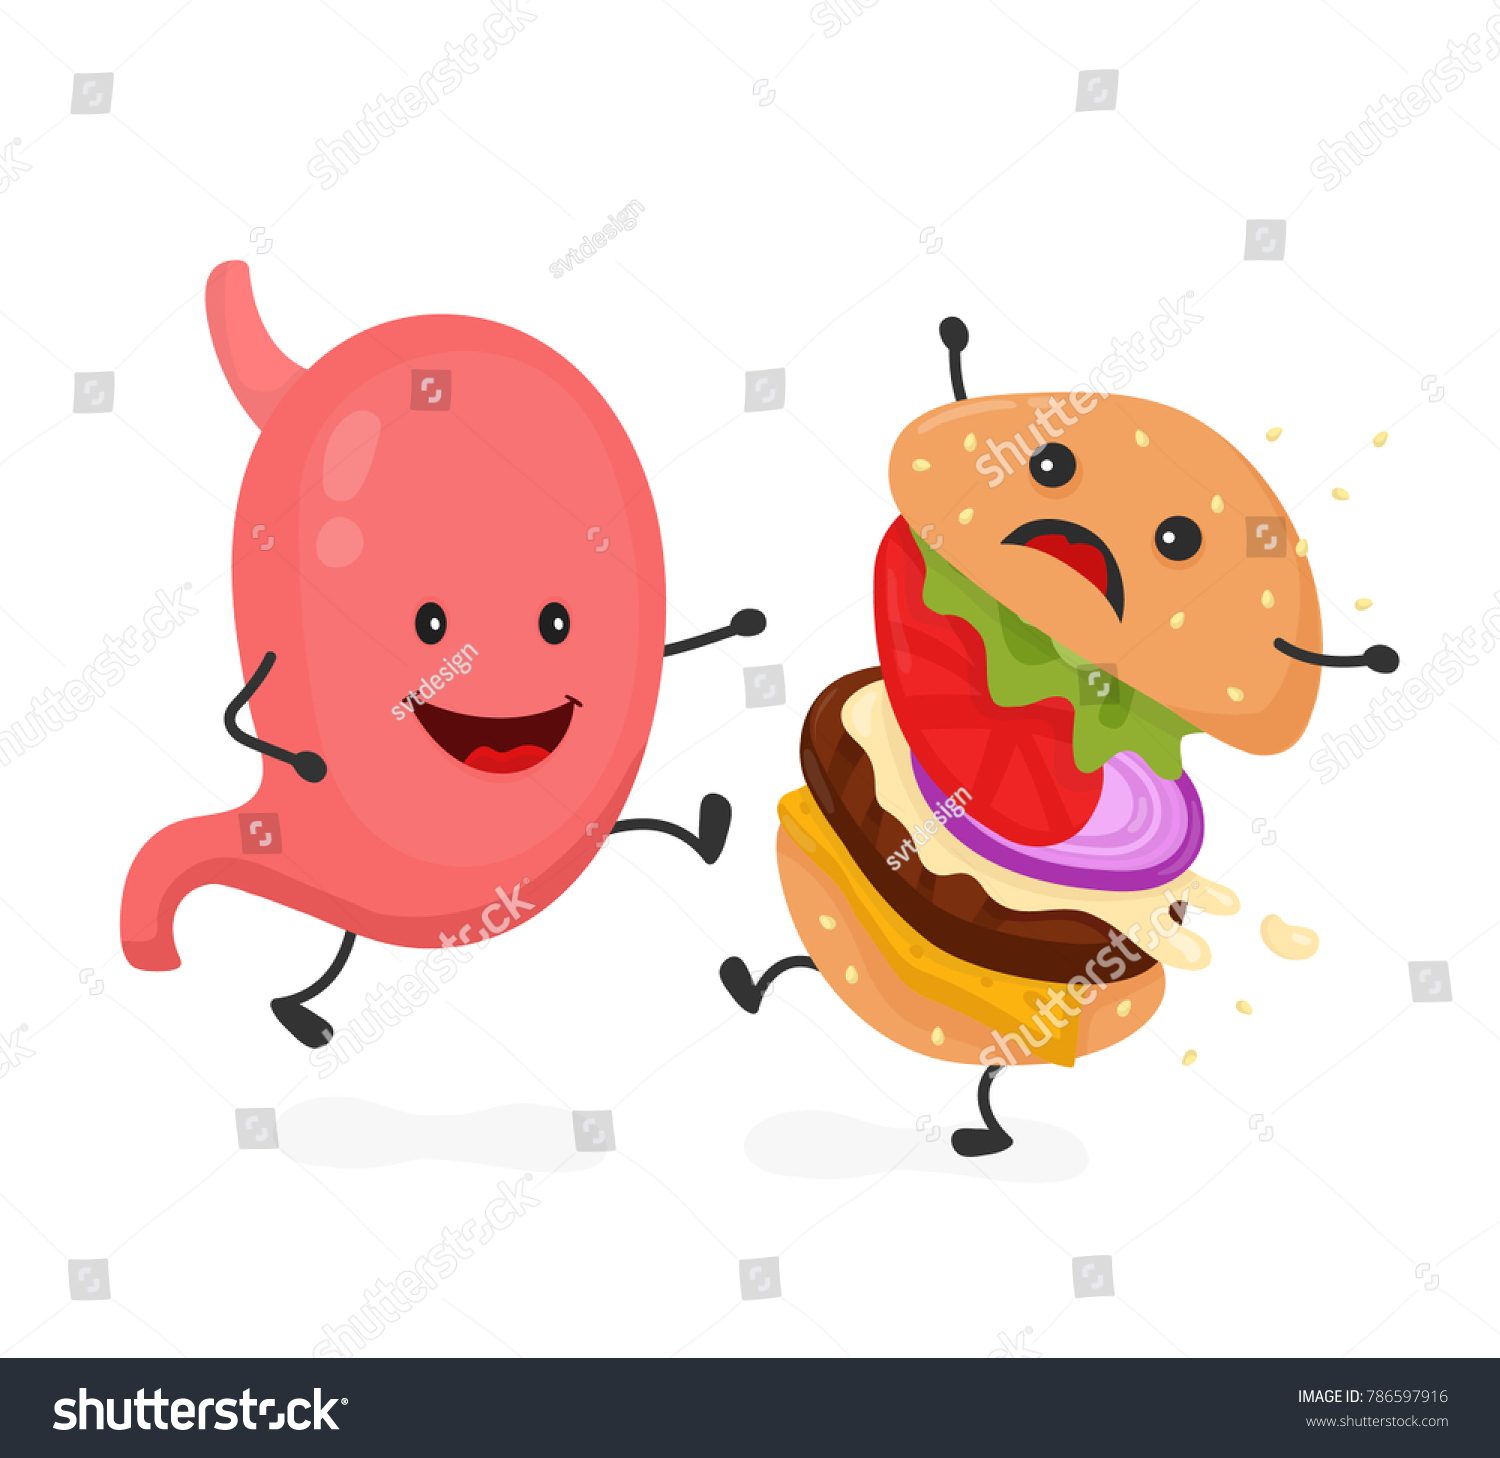 Happy Smile Strong Stomach Kick Burger Stock Illustration 786597916 Muscle Anatomy Diagram By And Burgers Hamburger Modern Flat Style Cartoon Character Icon